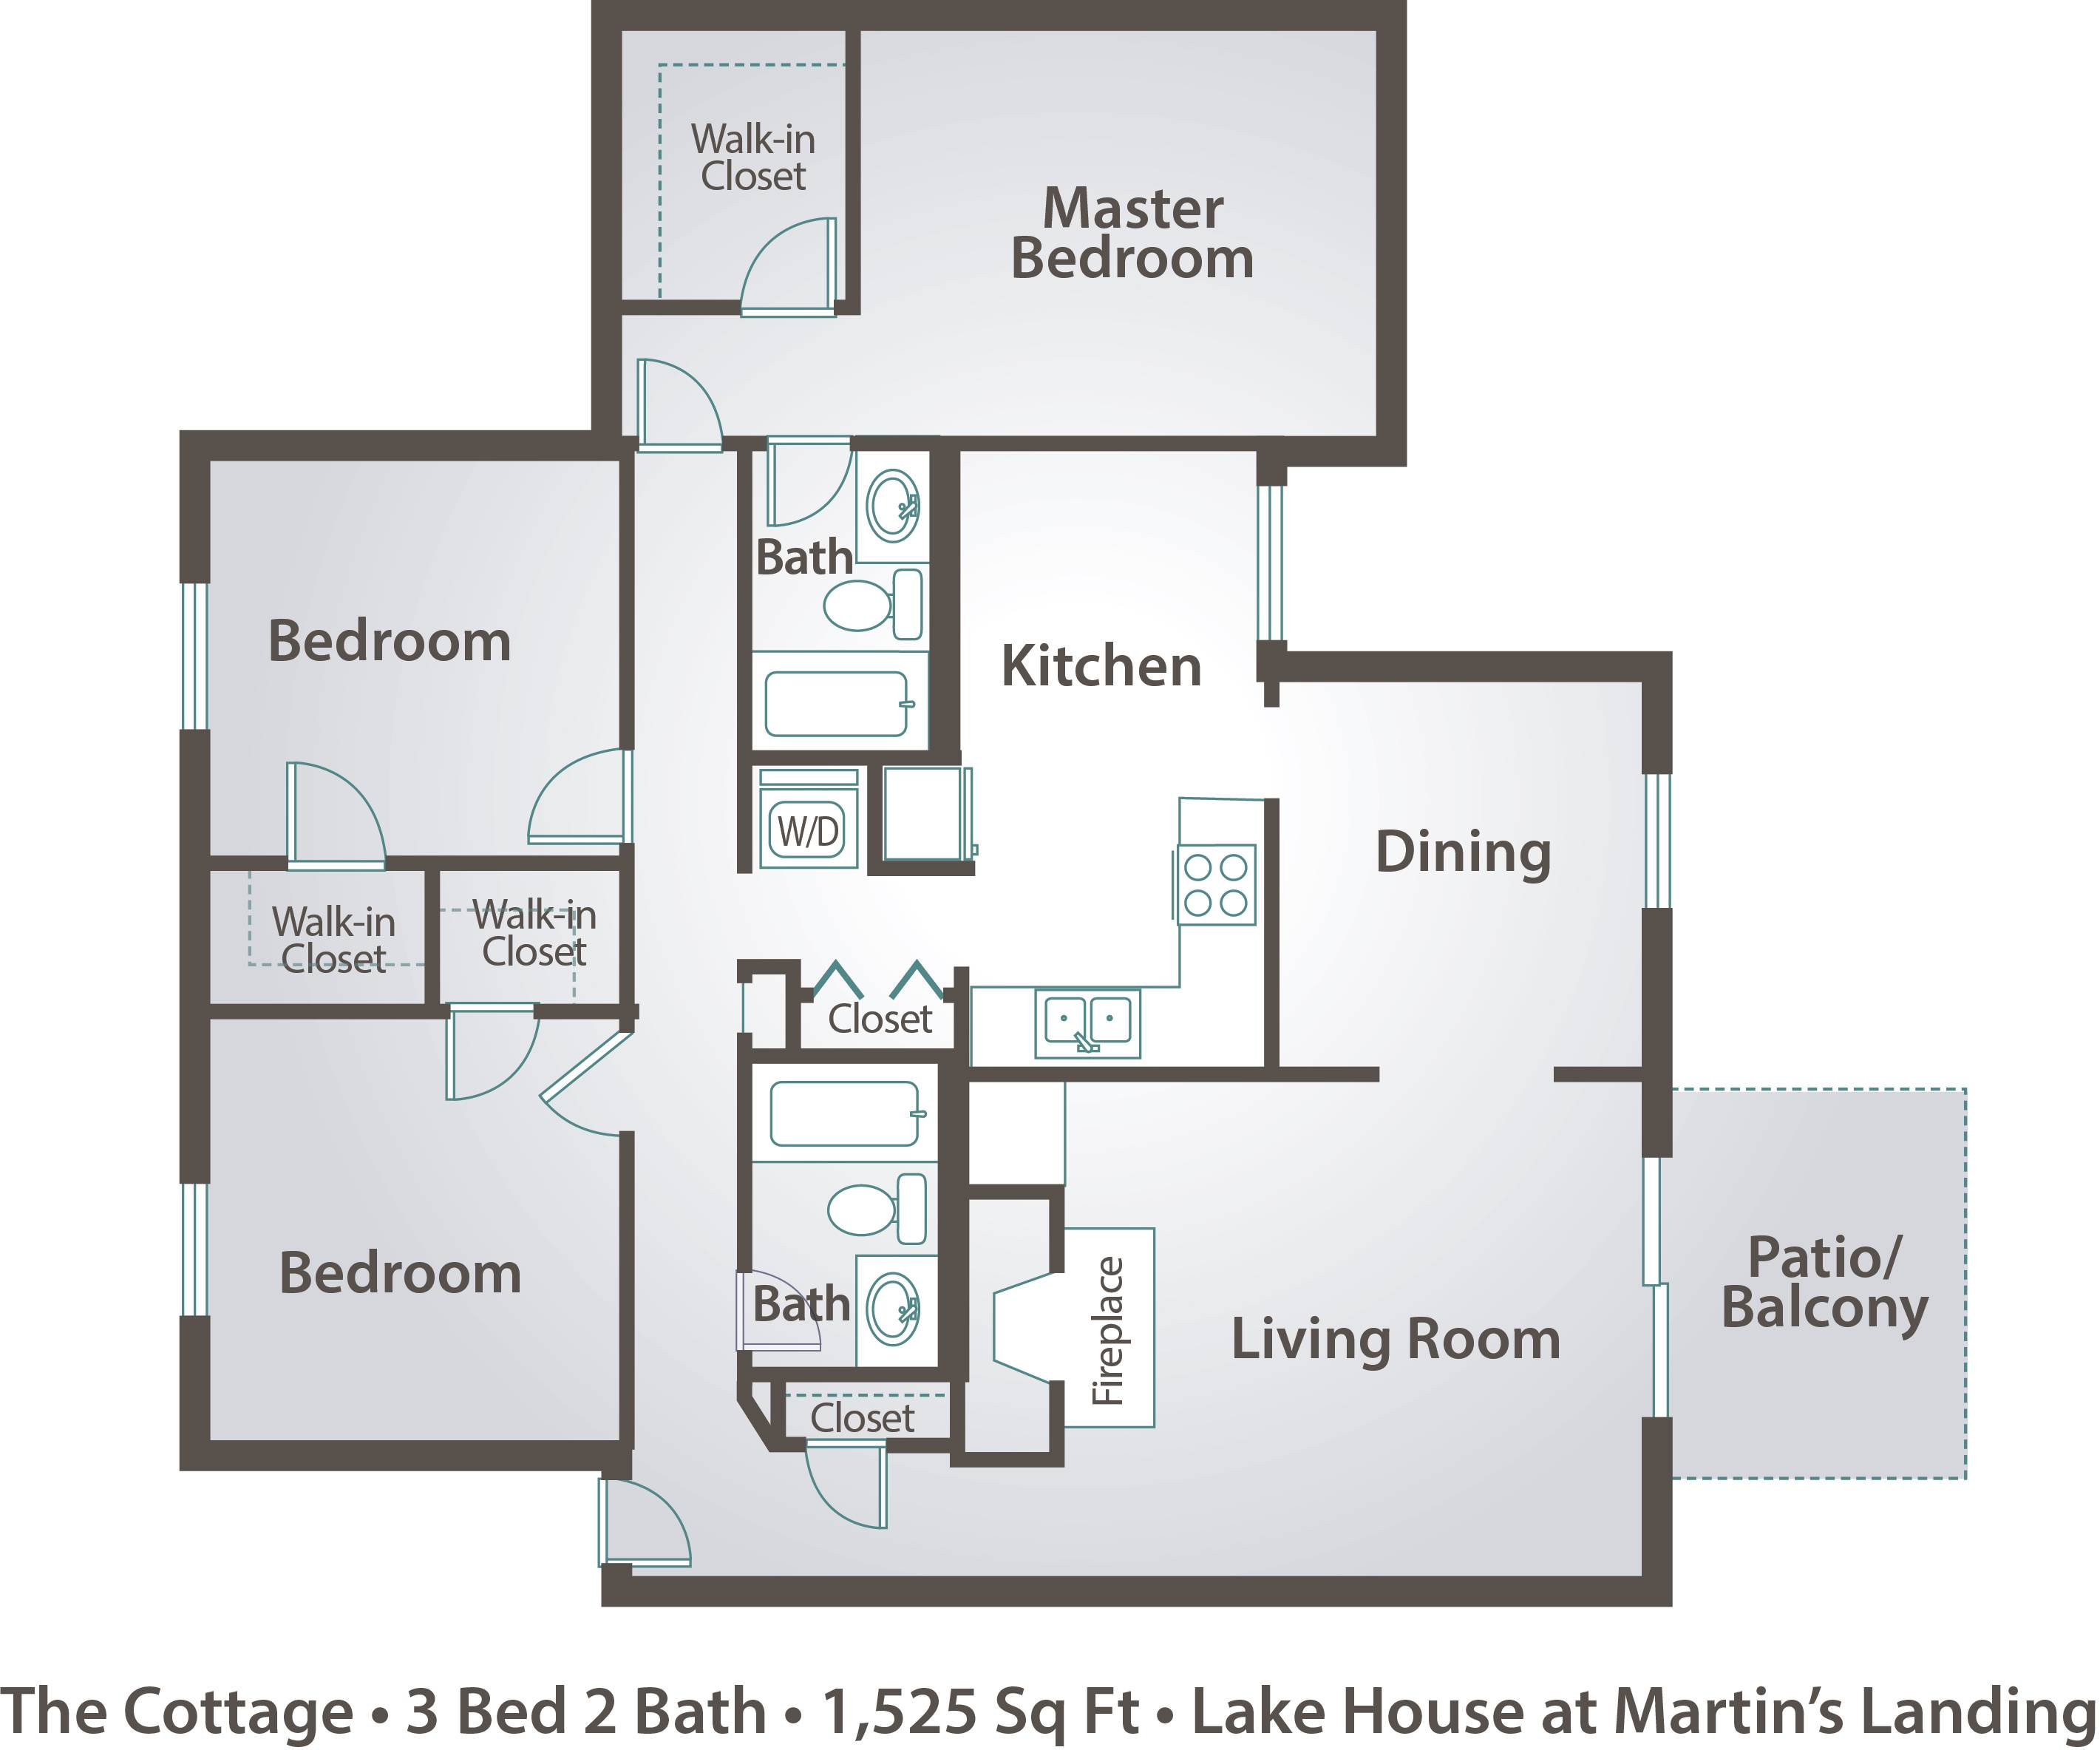 Apartment floor plans pricing the lake house at martin for 3 bedroom house floor plans with models pdf